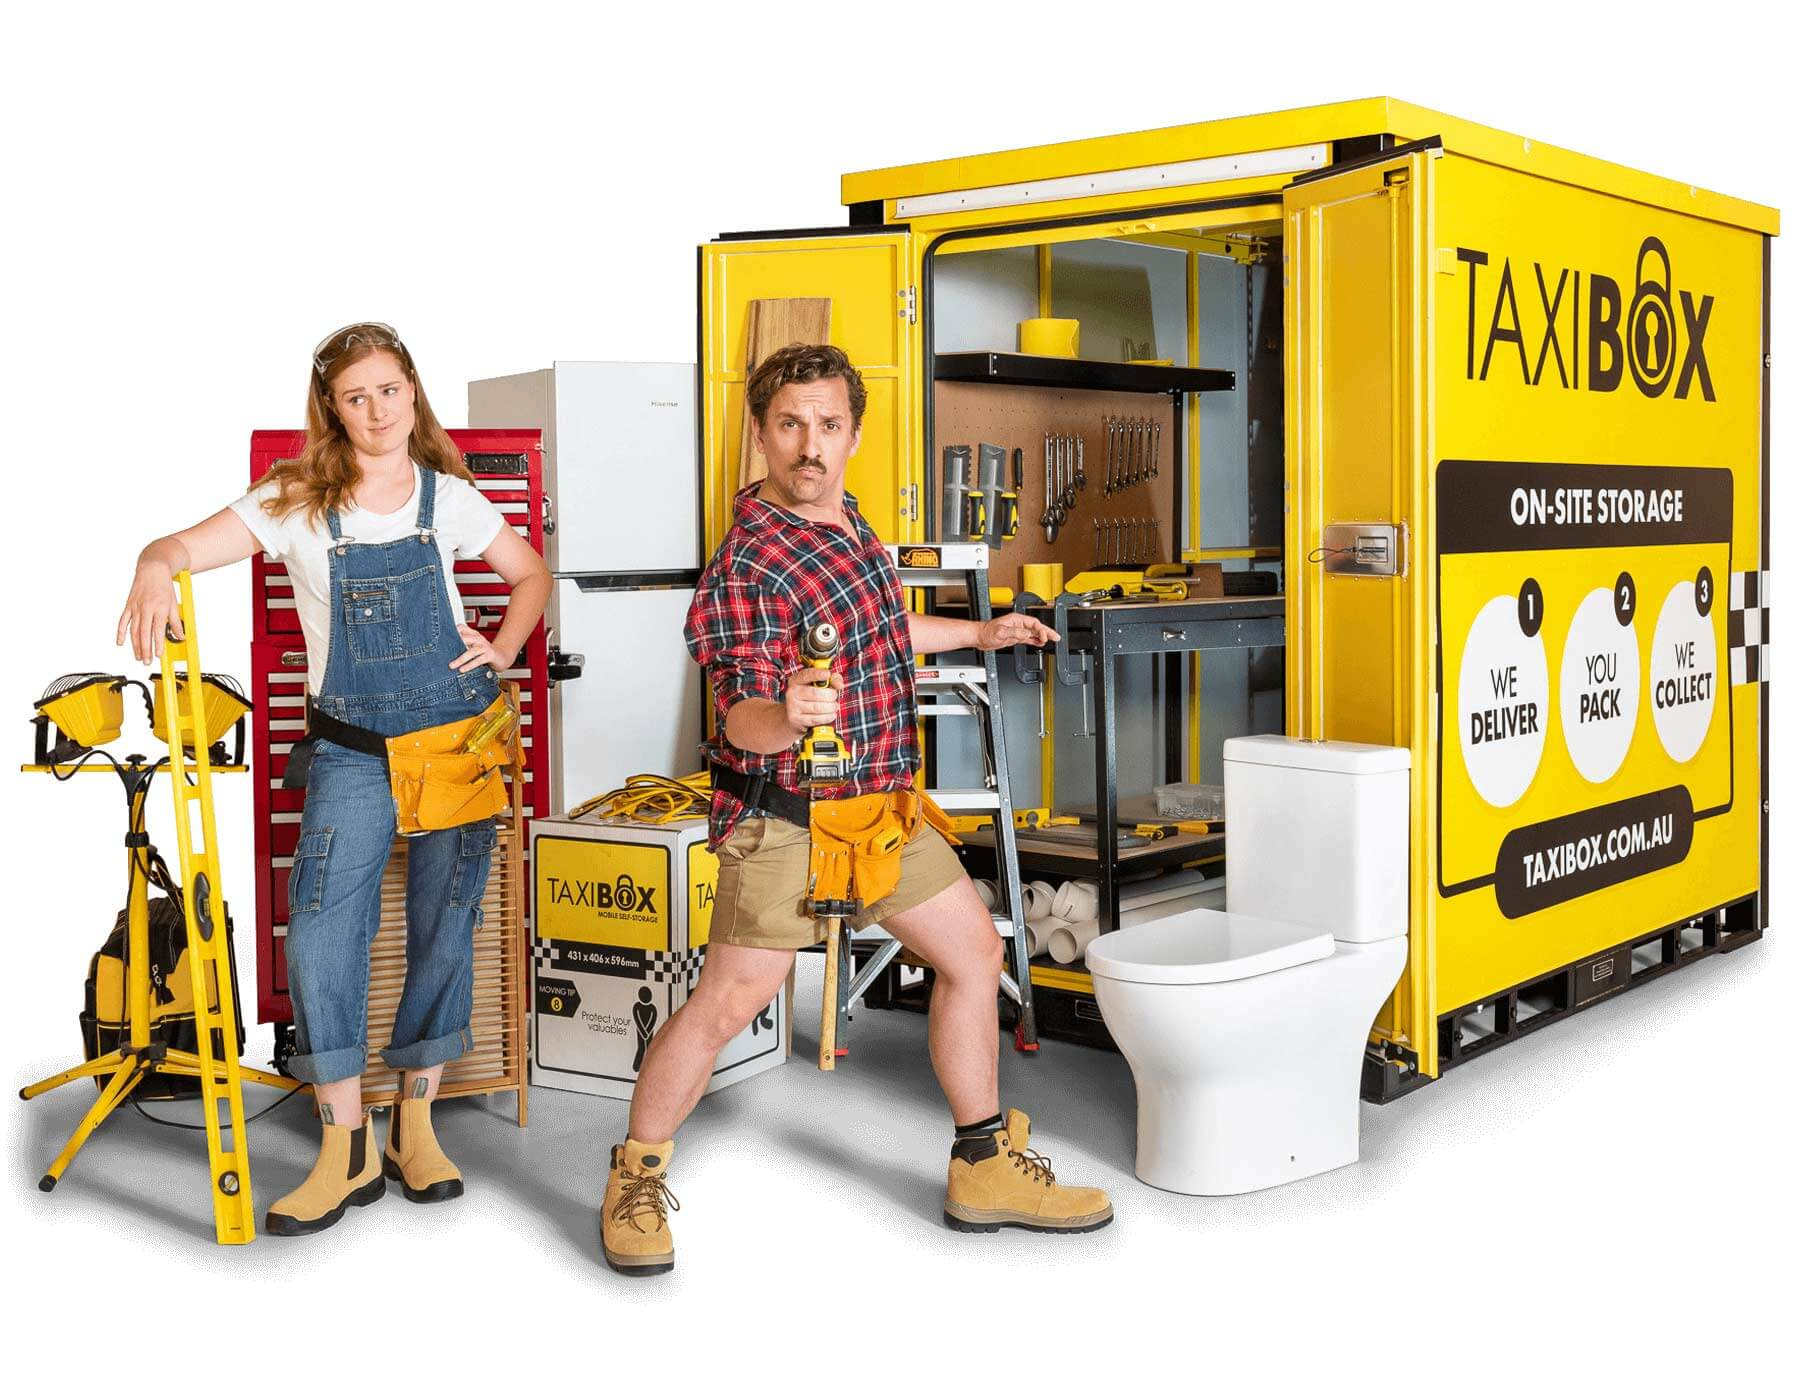 TAXIBOX - Mobile storage, On-site Storage and Cool Storage